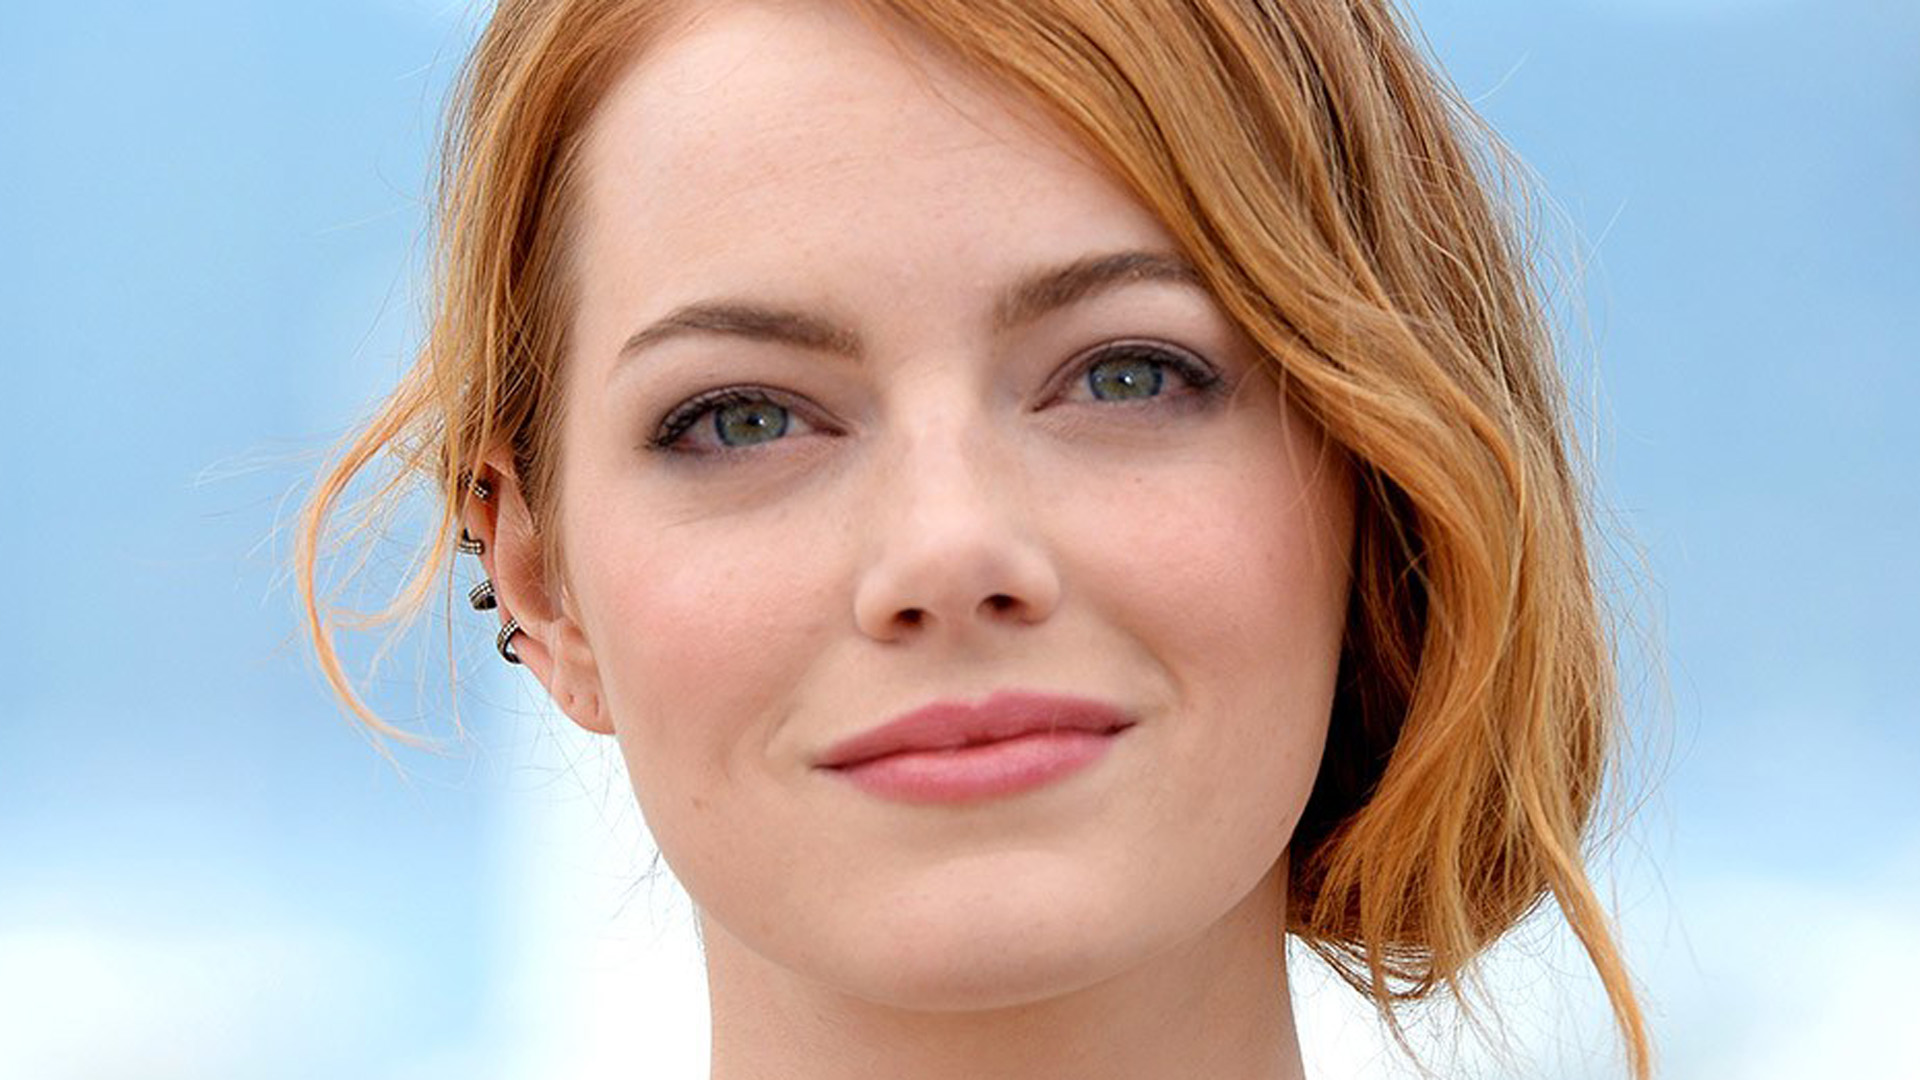 Emma Stone Net Worth: How Rich Is Emma Stone In 2019